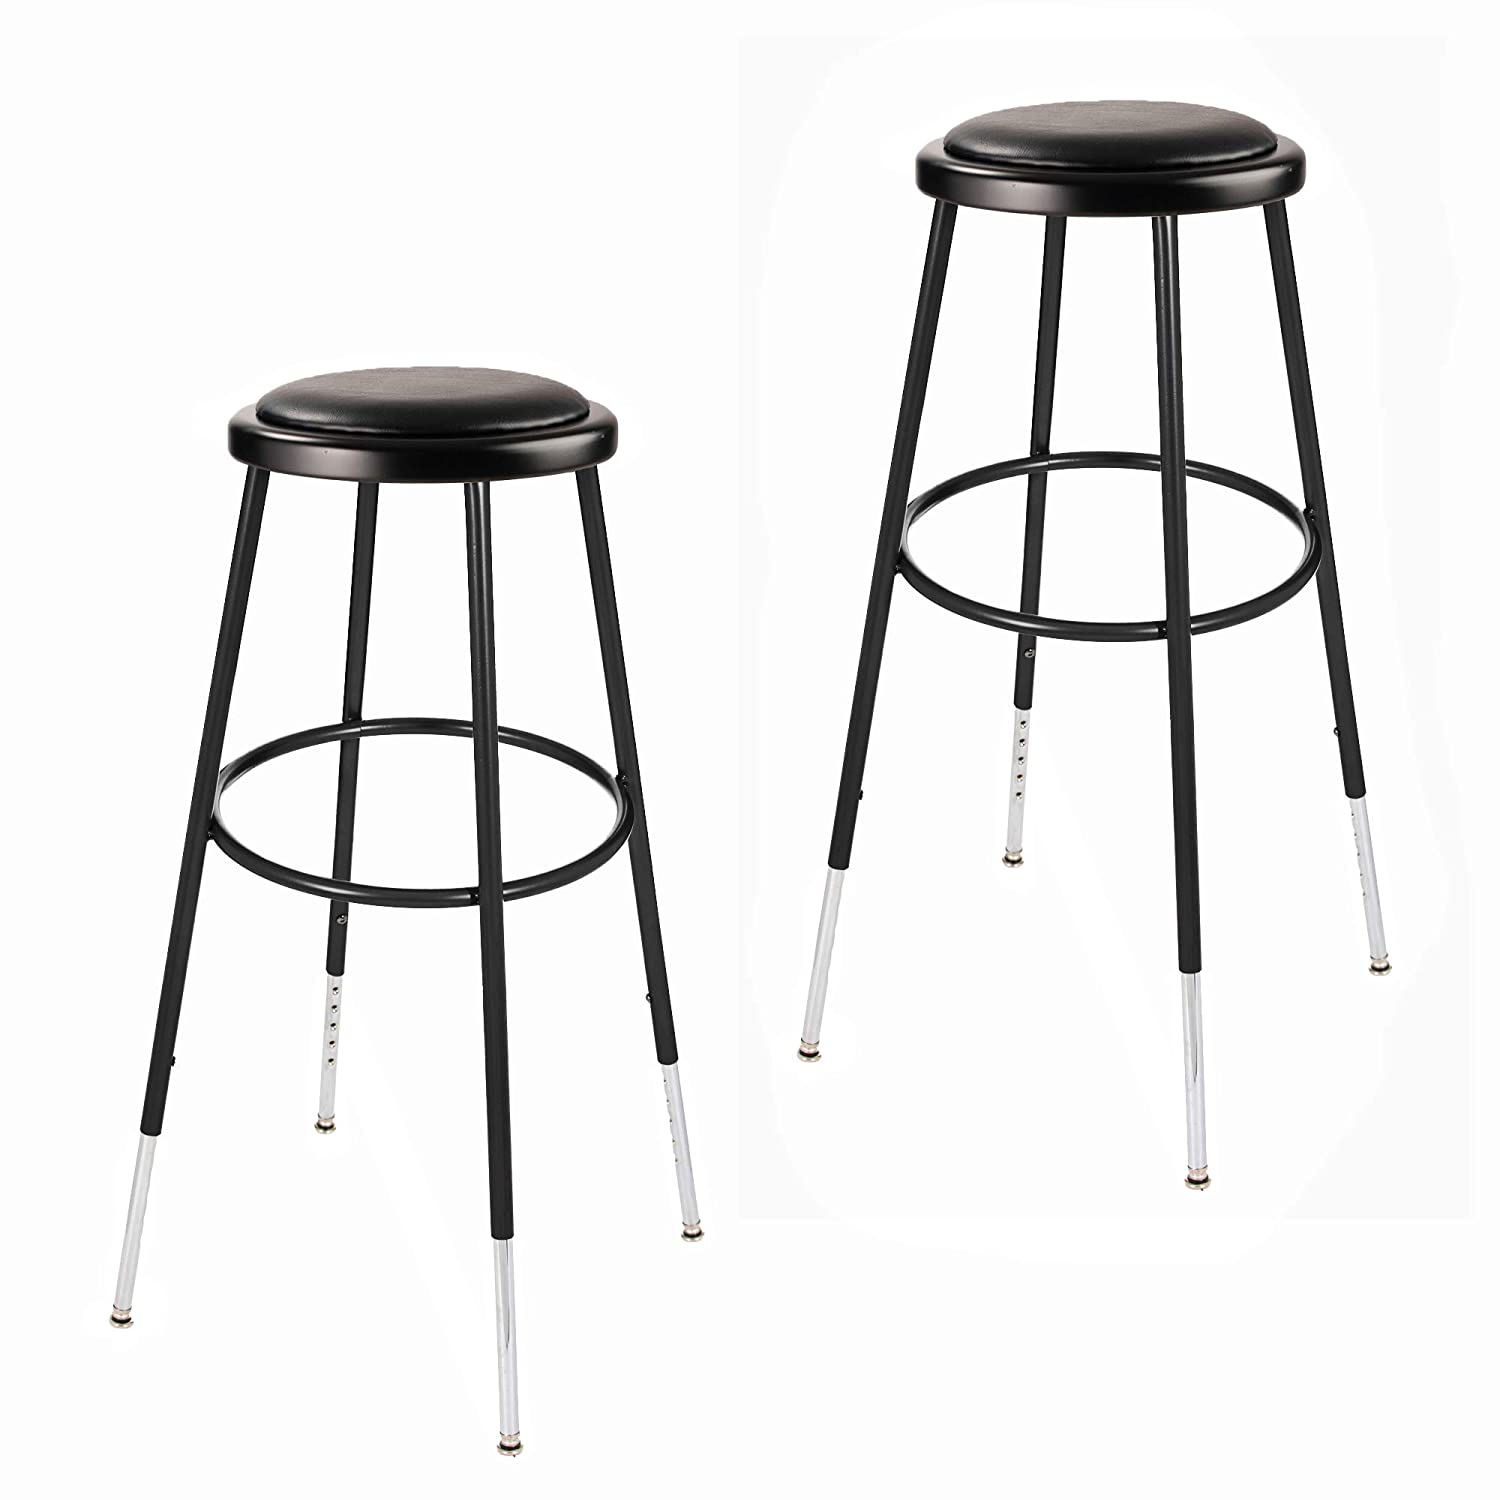 2 Pack Max 81% OFF OEF Furnishings Height Tampa Mall St Vinyl Padded Adjustable Black